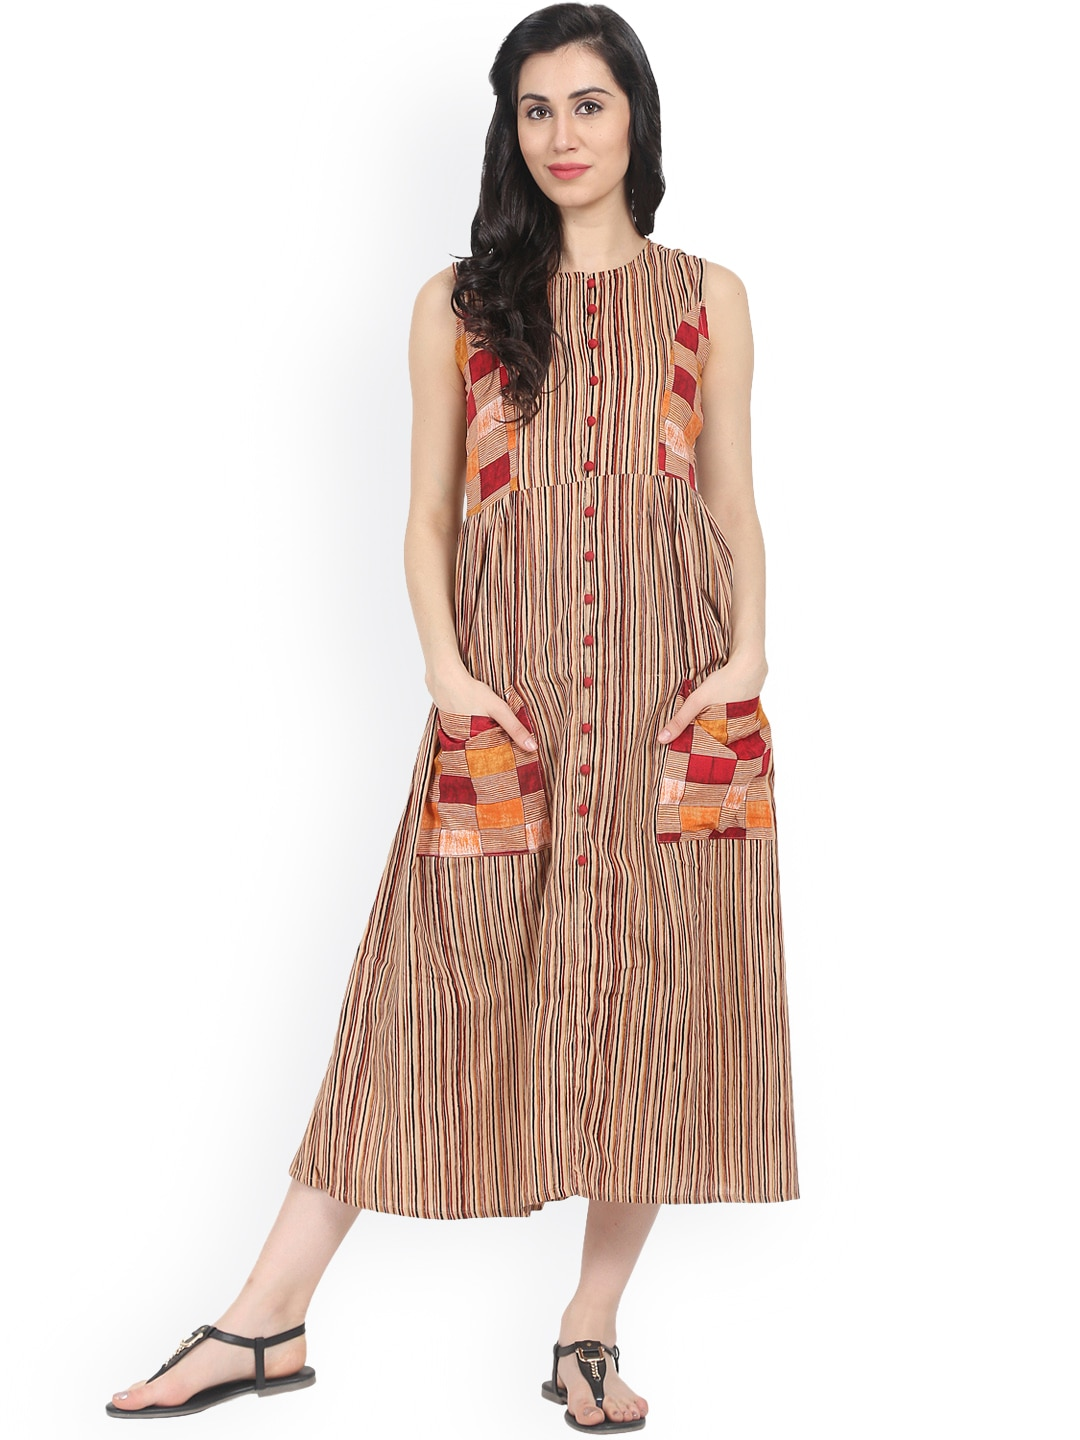 Striped Dresses - Buy Striped Dresses online in India 9bee0132f